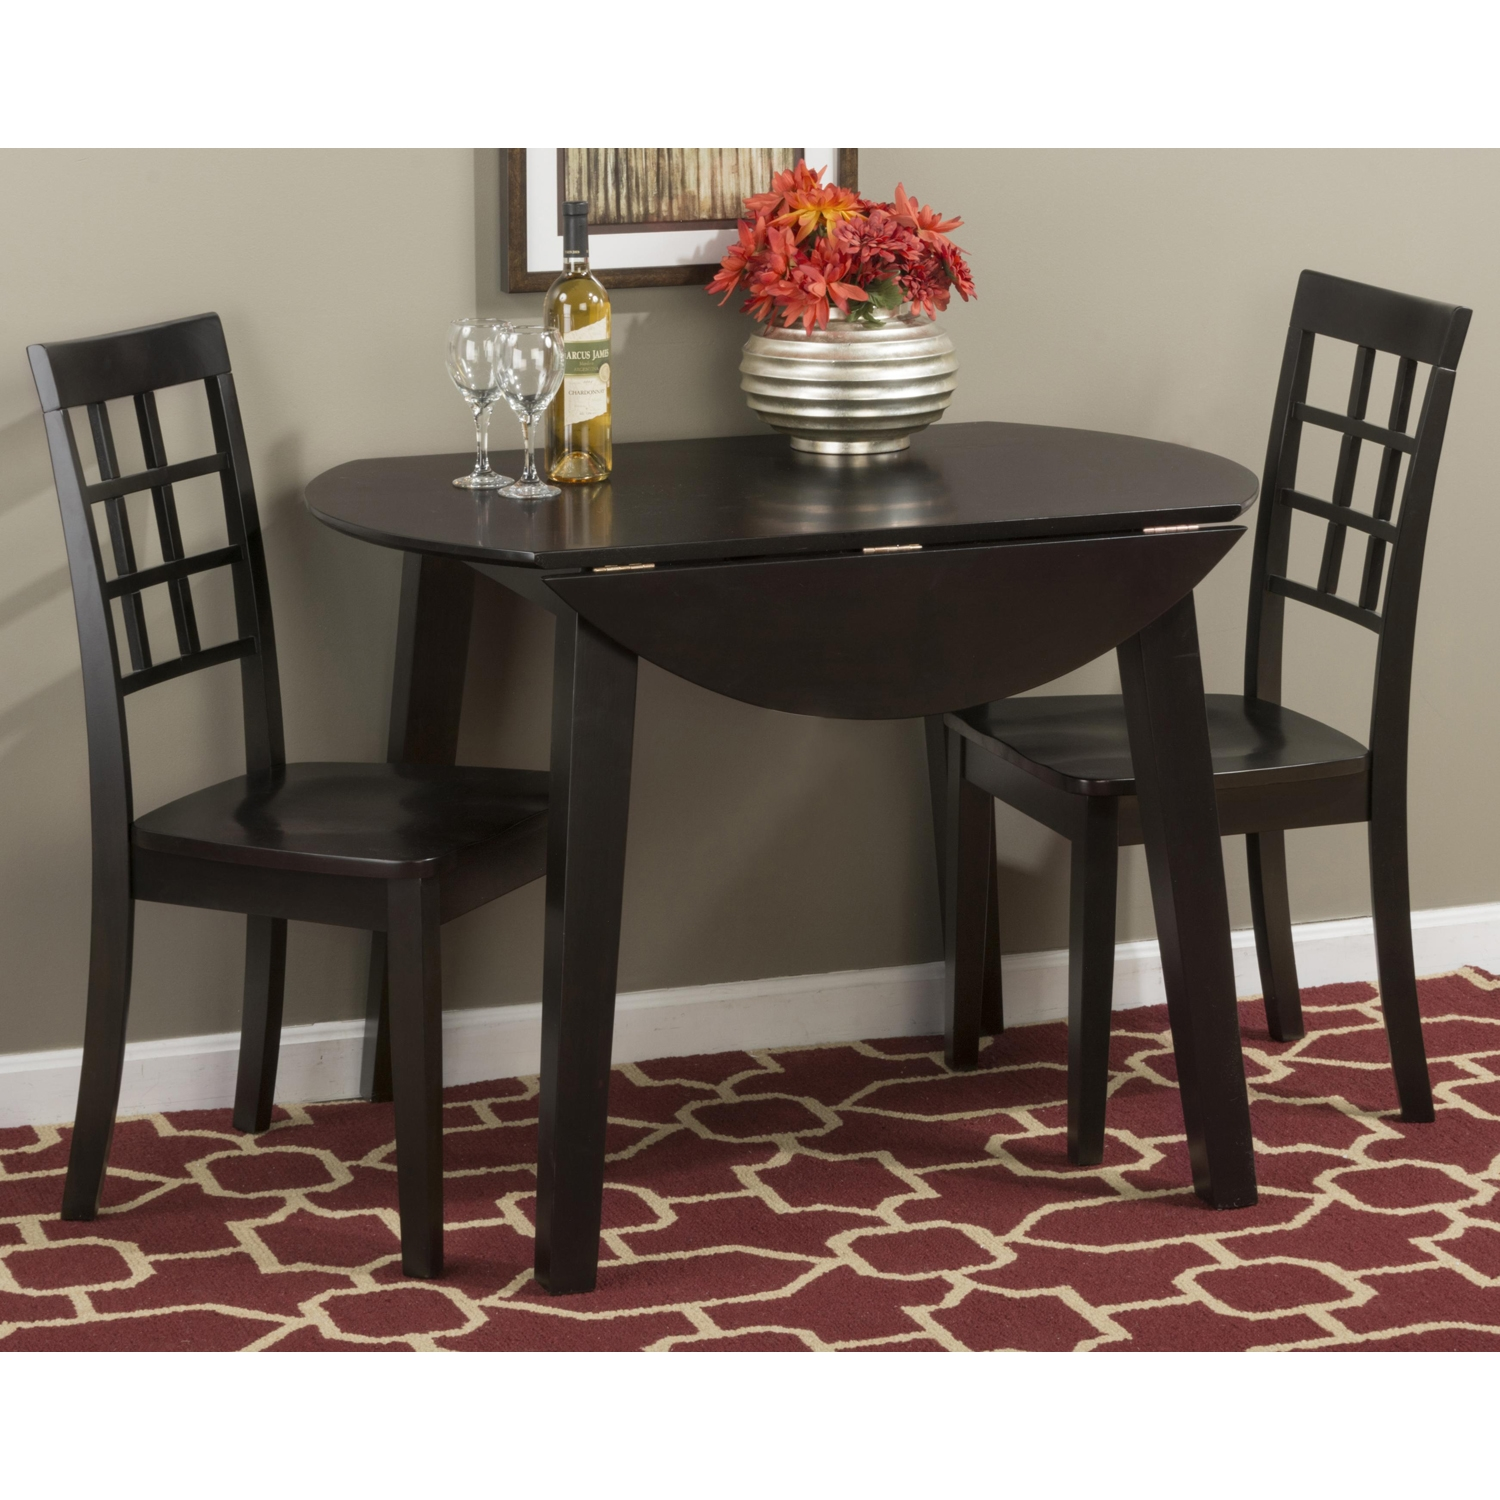 Simplicity 5 Pieces Dining Set - Grid Back Chairs, Round Table, Espresso - JOFR-552-28-939KD-SET